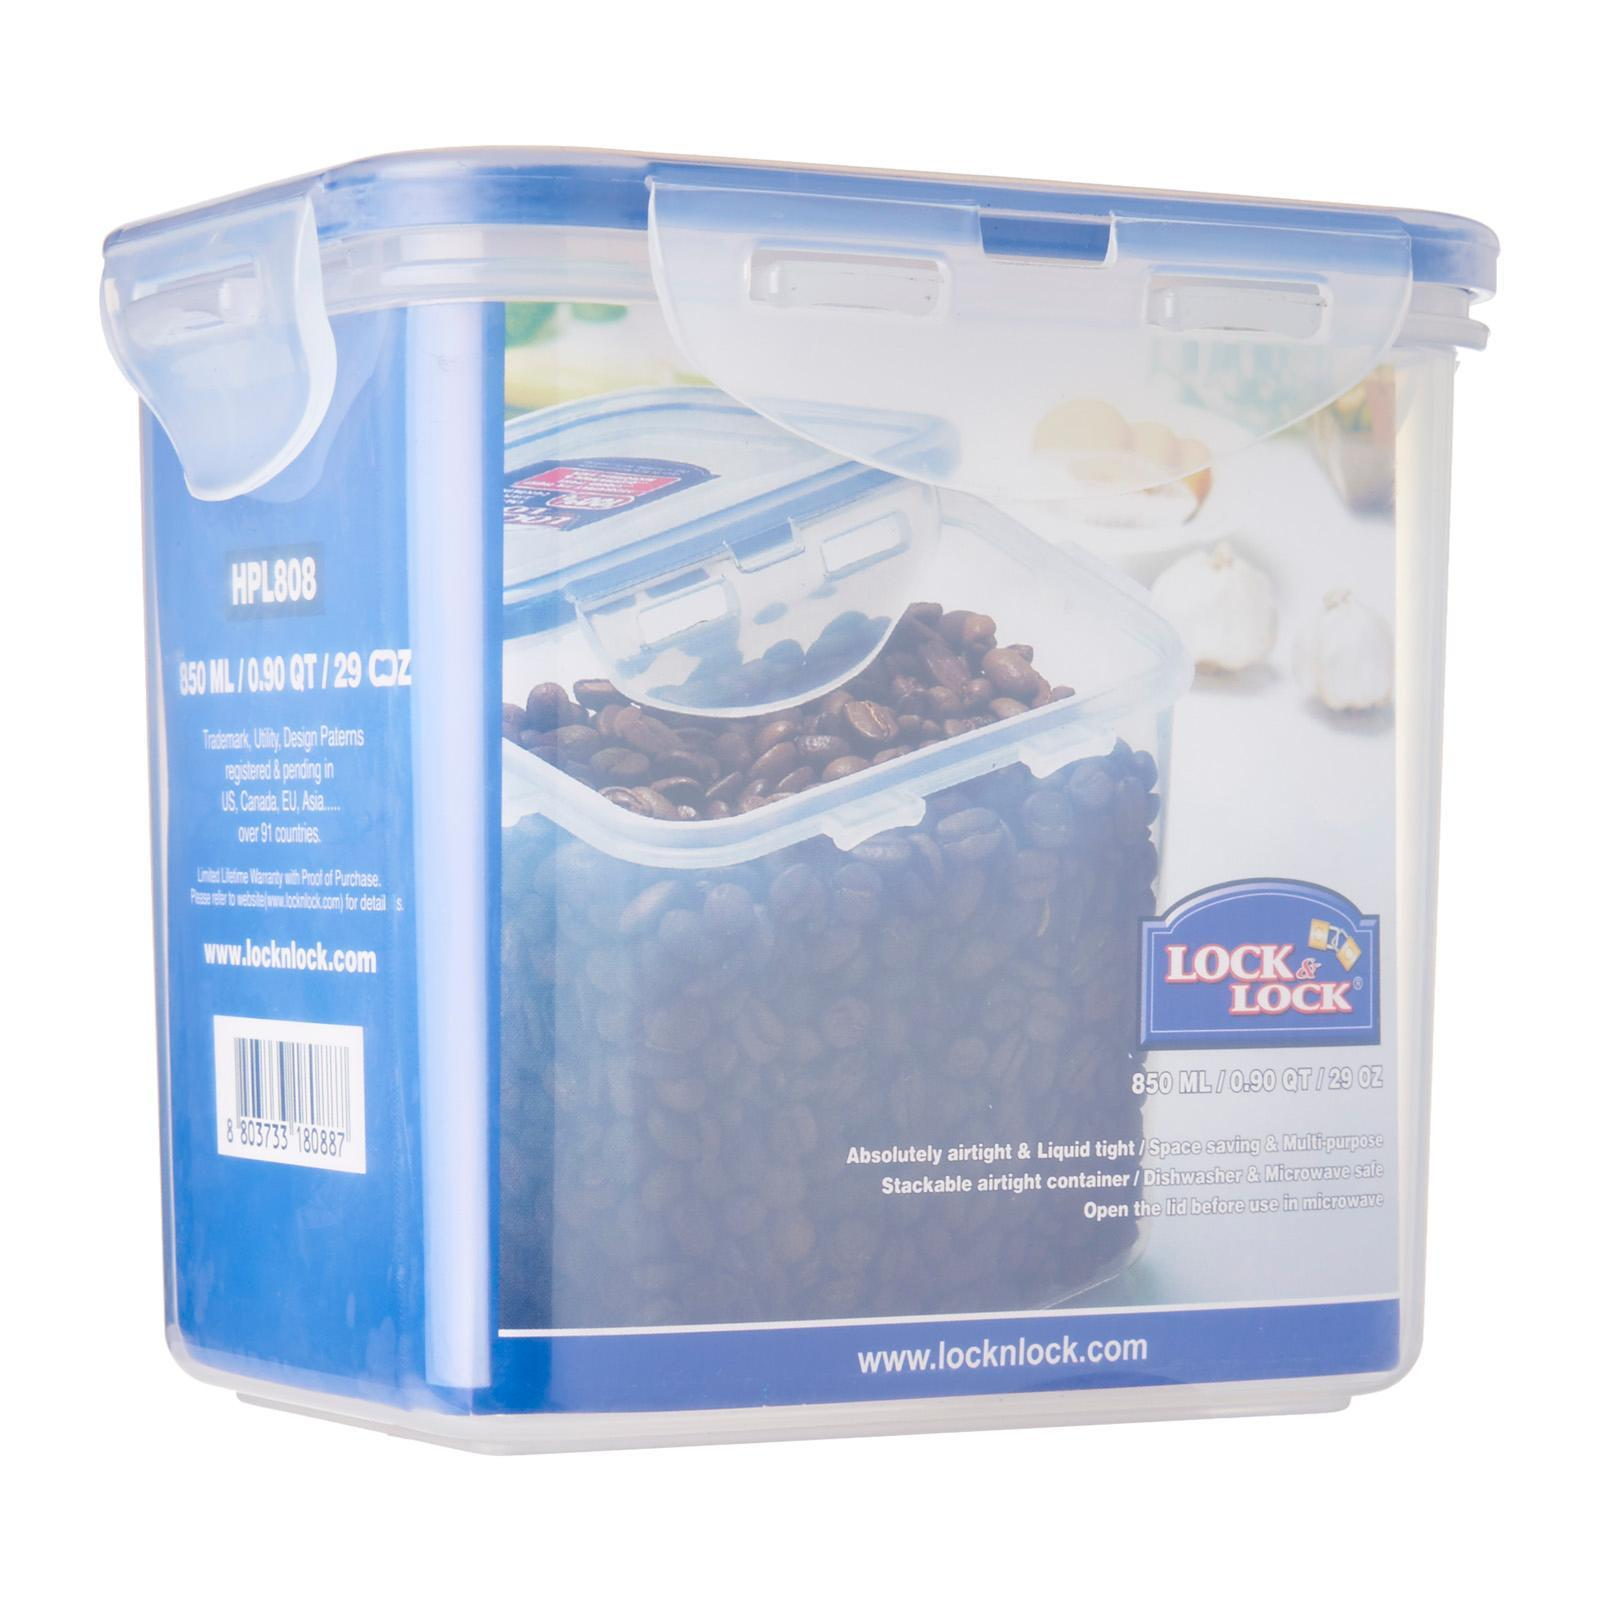 Food Containers - Buy Food Containers at Best Price in